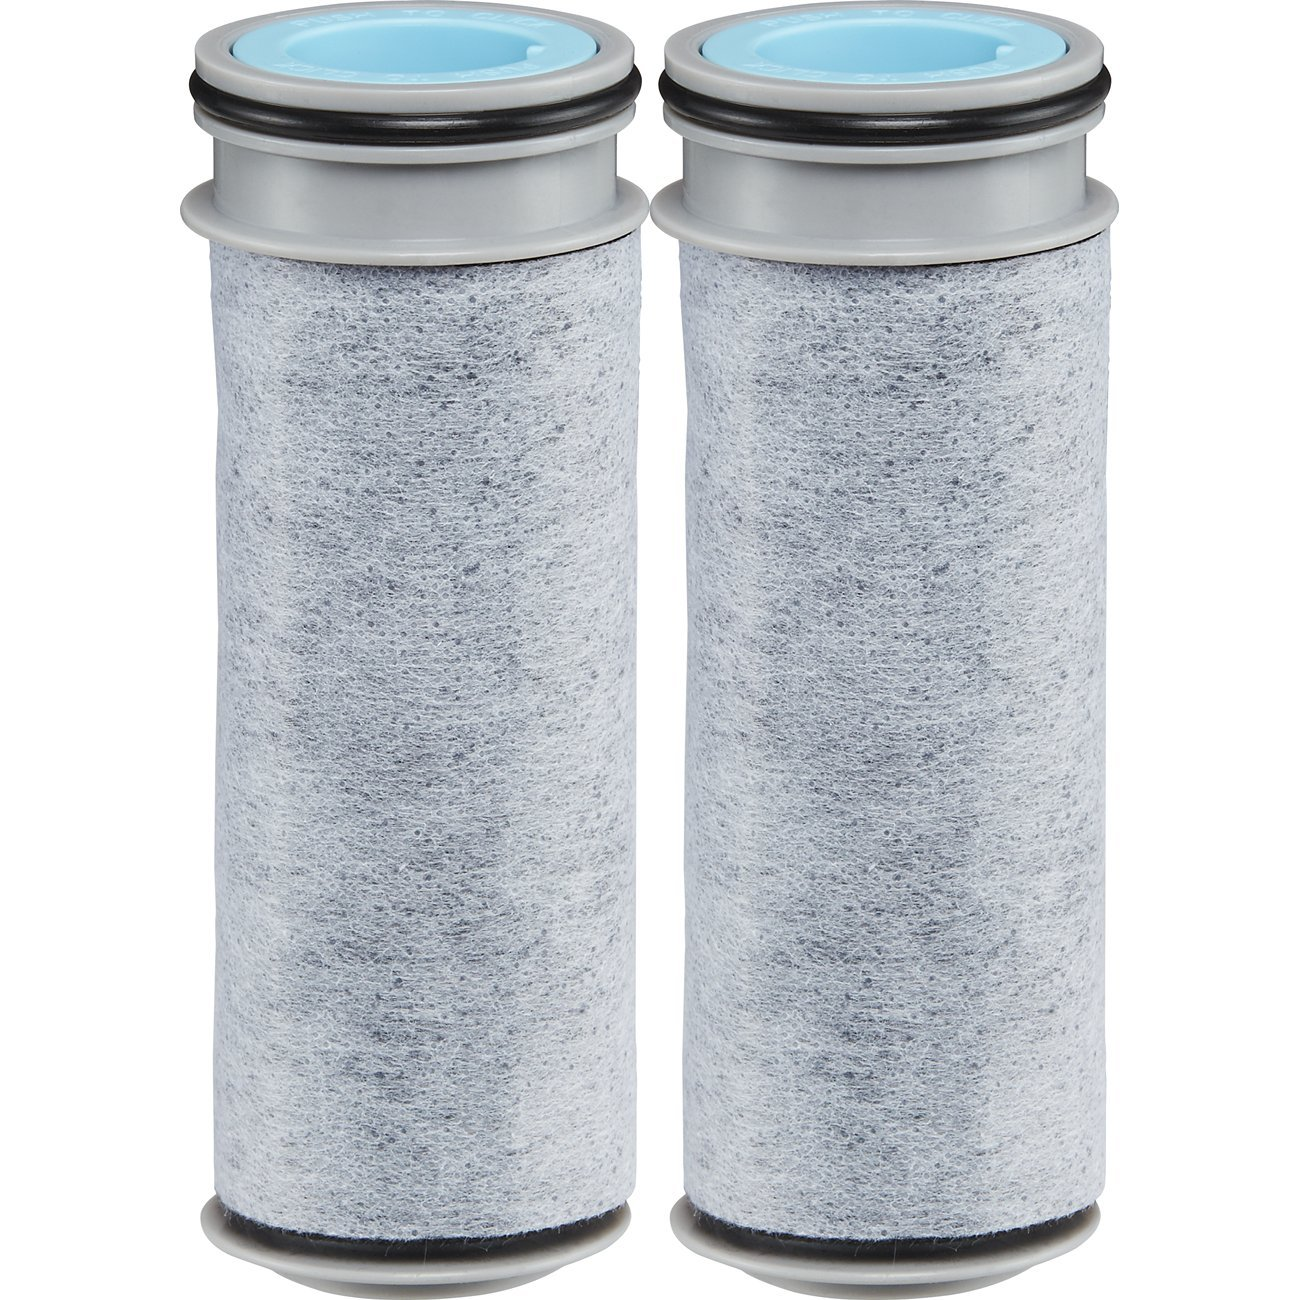 How To Filter Water At Home Amazoncom Replacement Water Filters Home Kitchen Replacement